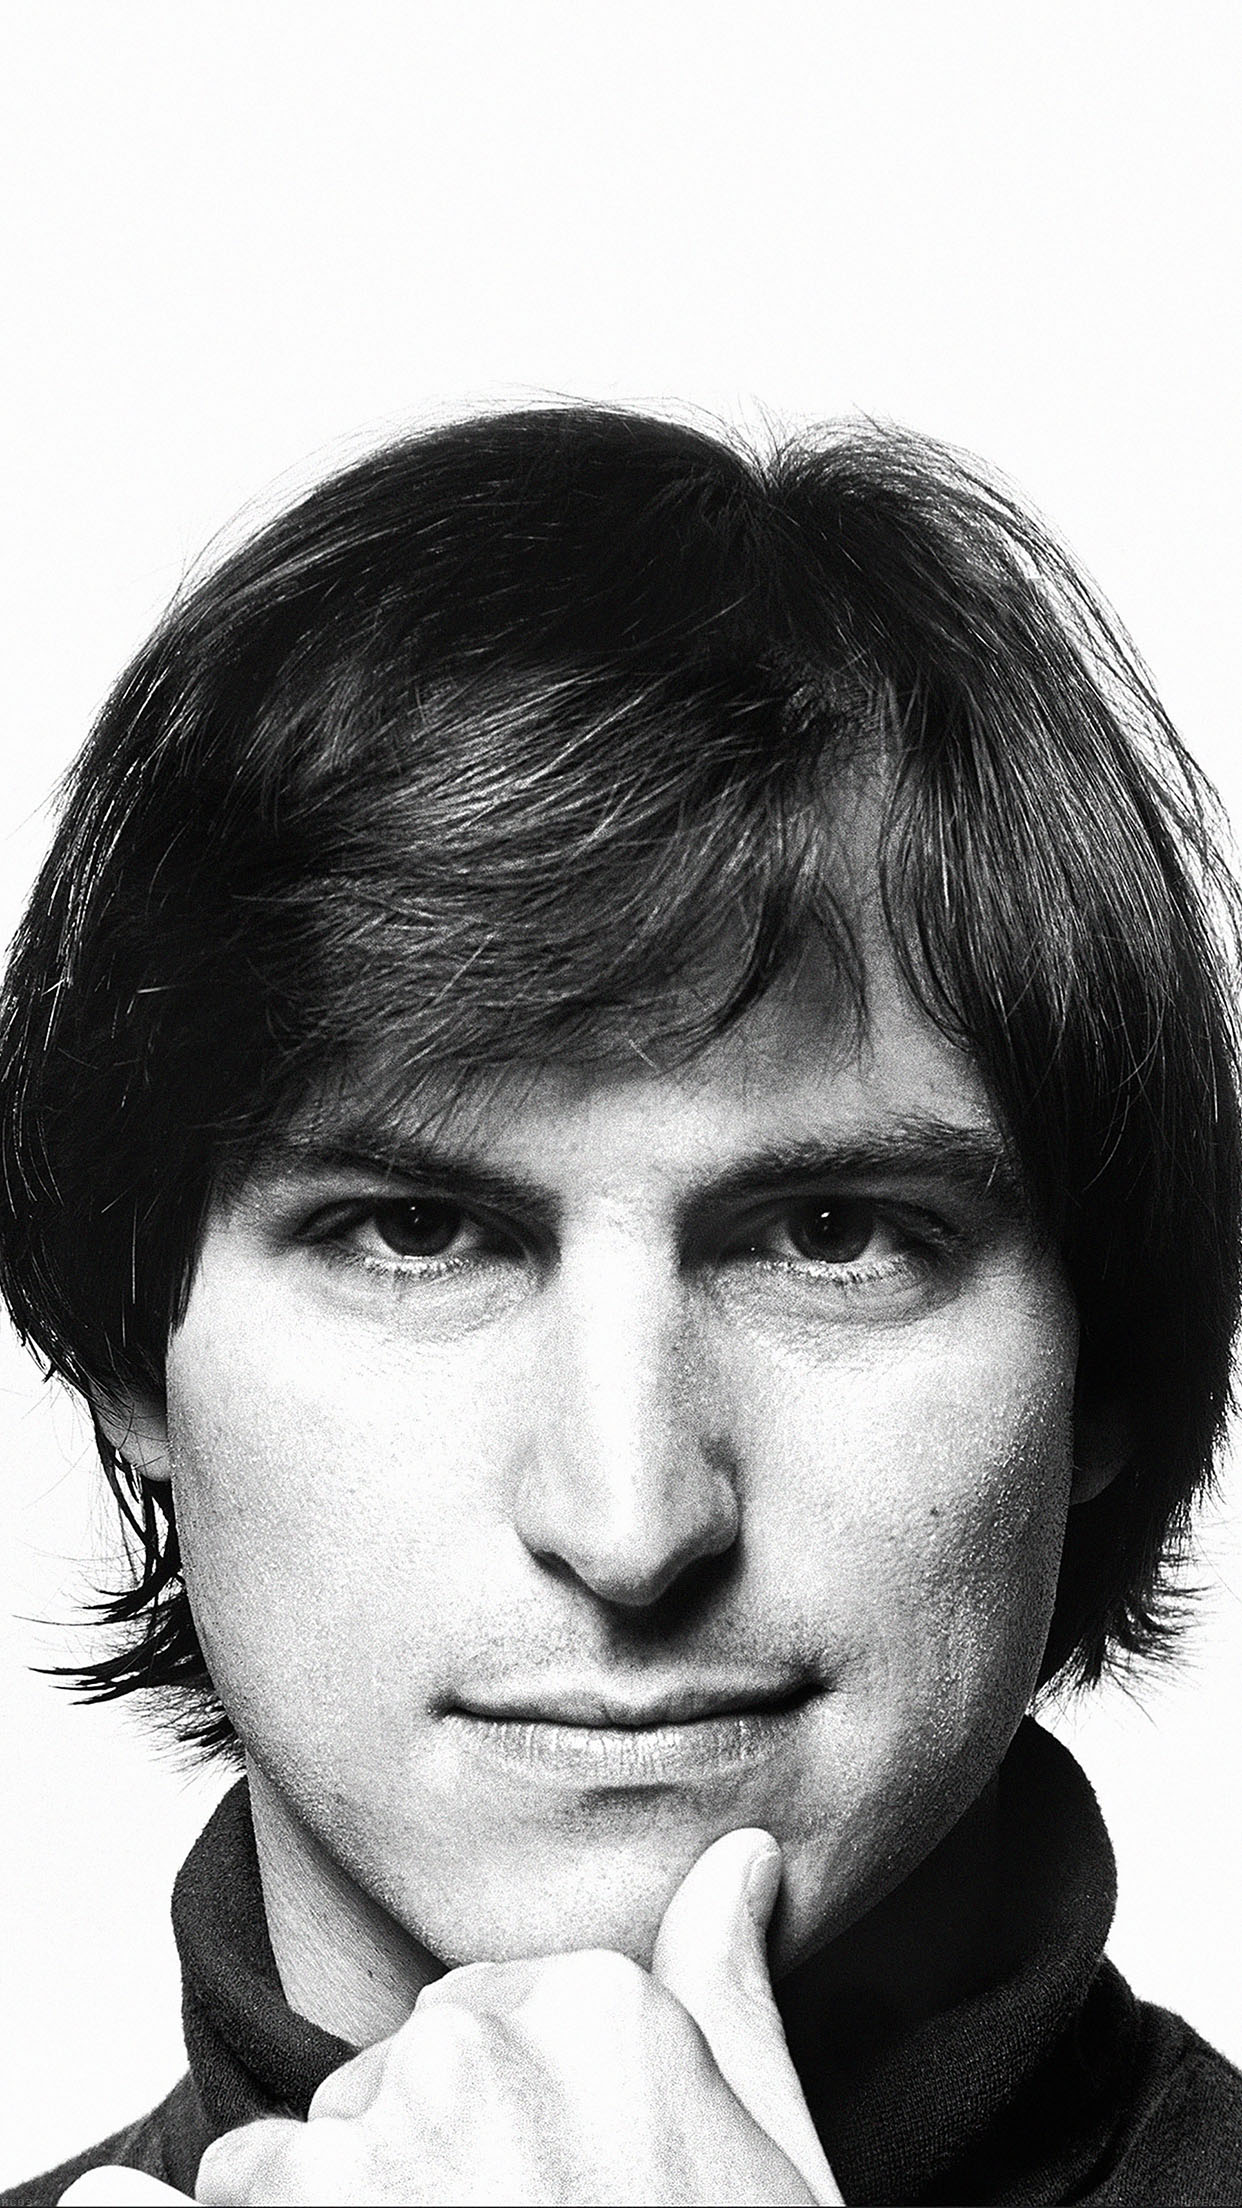 Dark Wallpapers For Iphone X I Love Papers Hc03 Young Steve Jobs Face